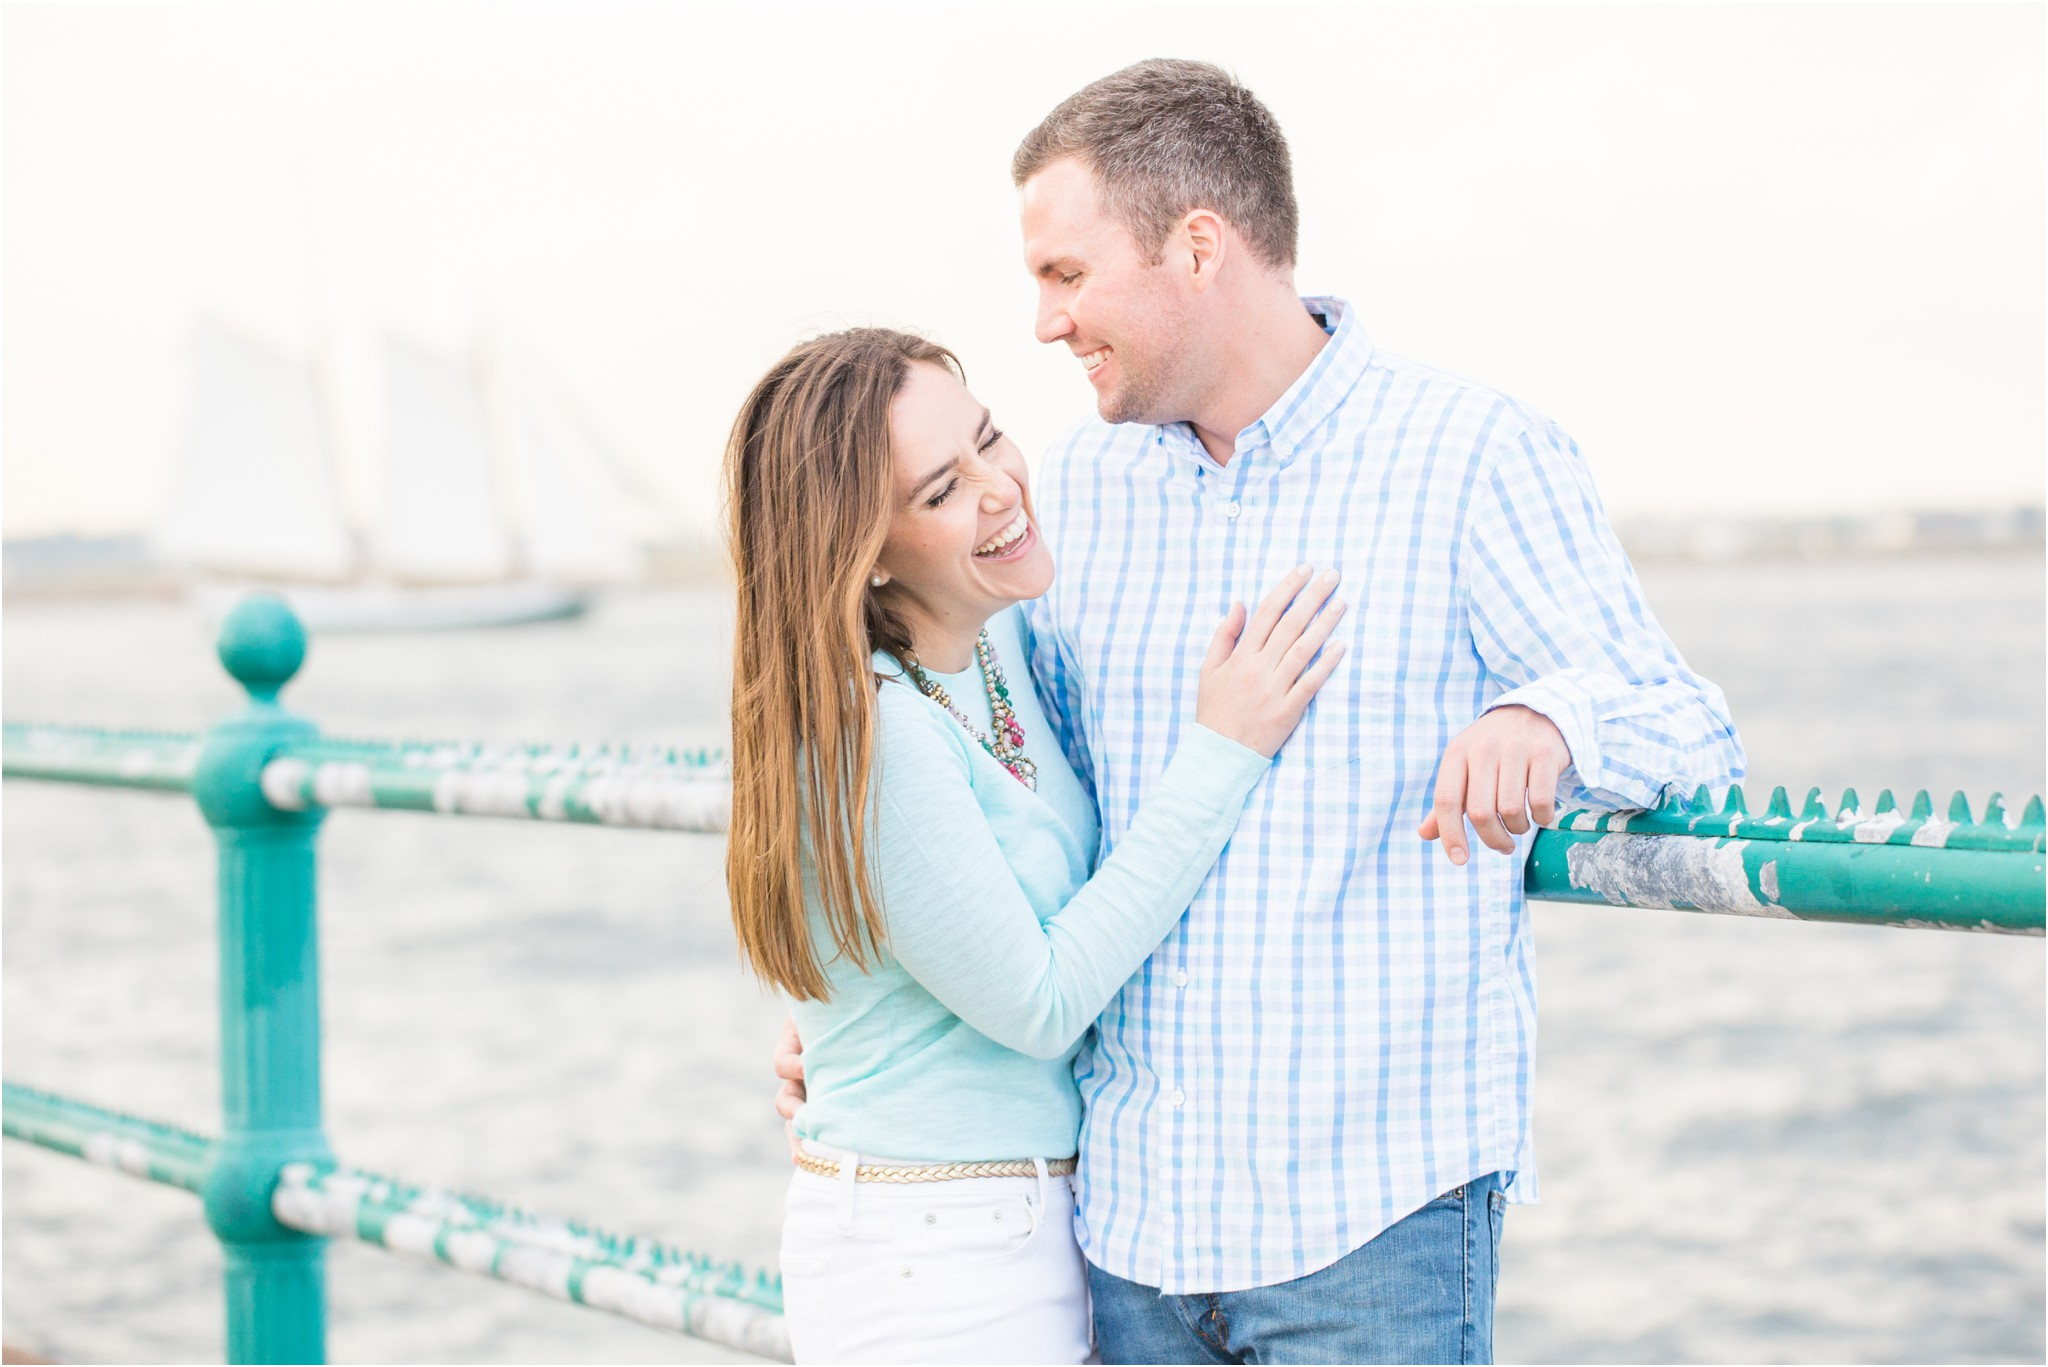 boston_engagement_session_Deborah_Zoe_0011.JPG